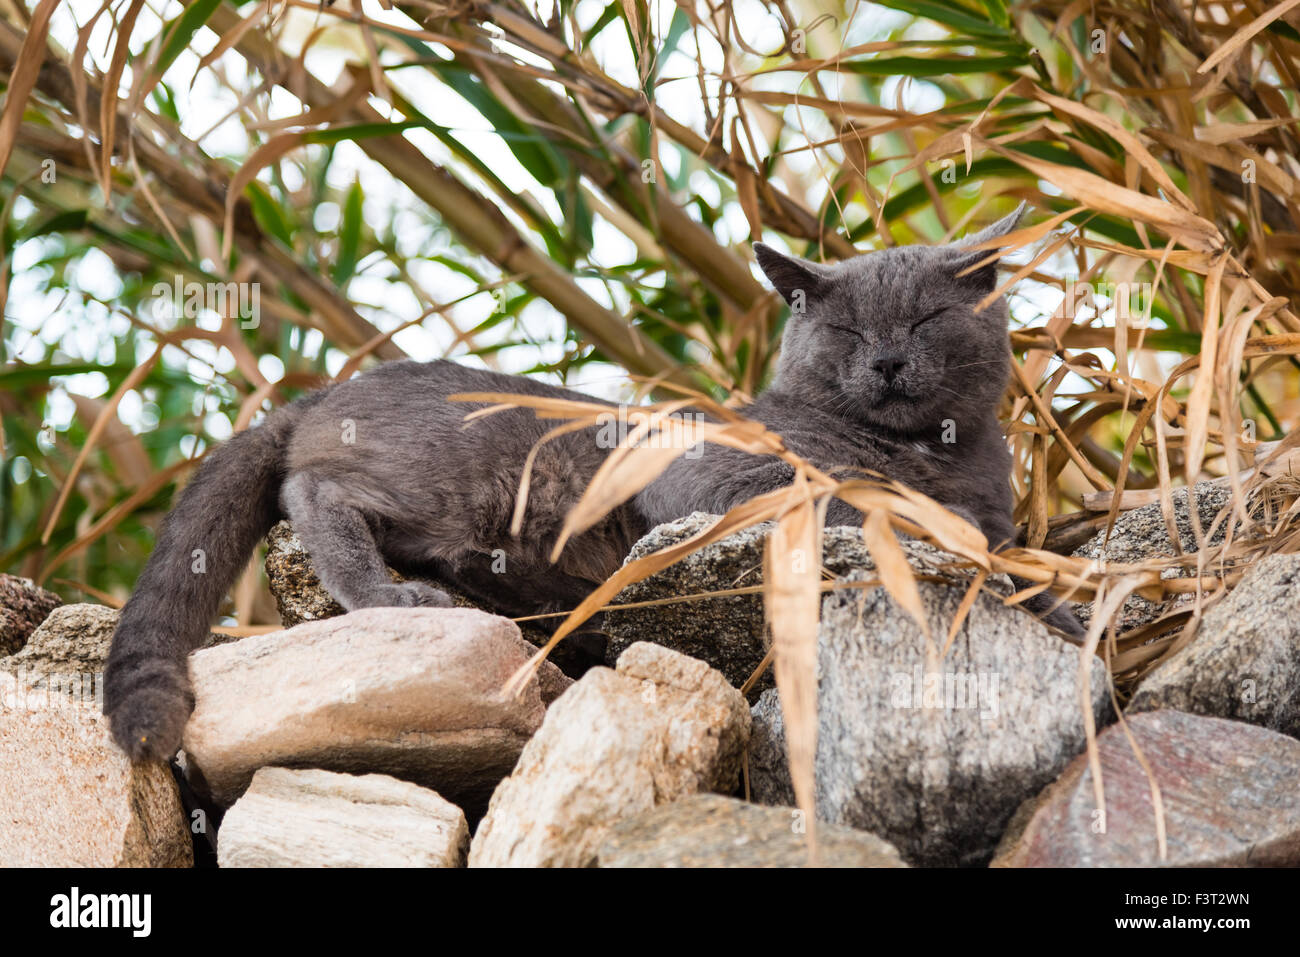 black cat nap sleep stockfotos black cat nap sleep bilder alamy. Black Bedroom Furniture Sets. Home Design Ideas